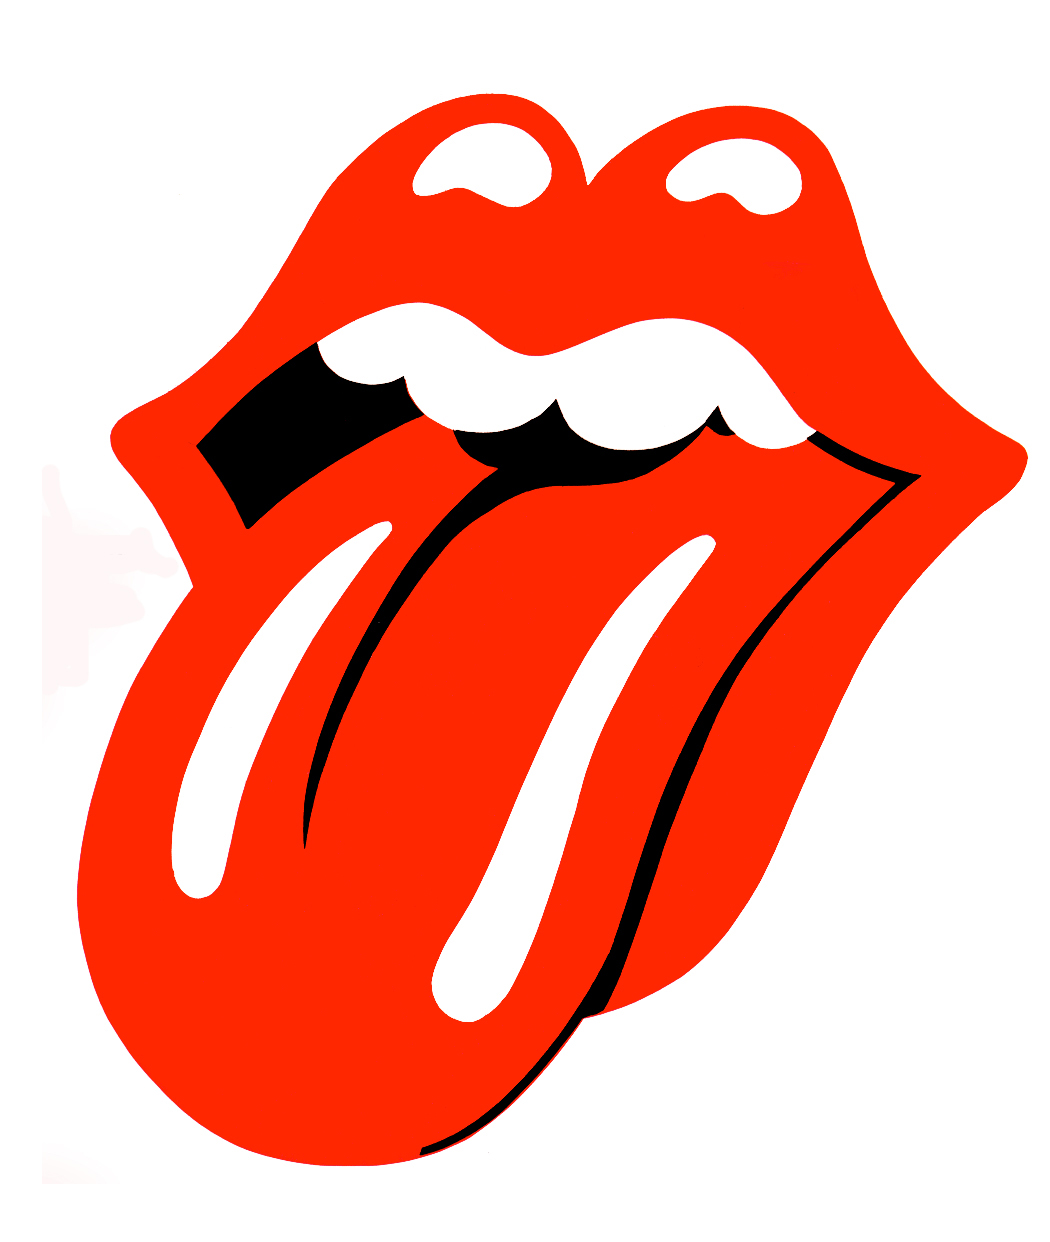 Rolling Stones Tongue Logo And The Sweet Taste Of Joy Coincidence Or